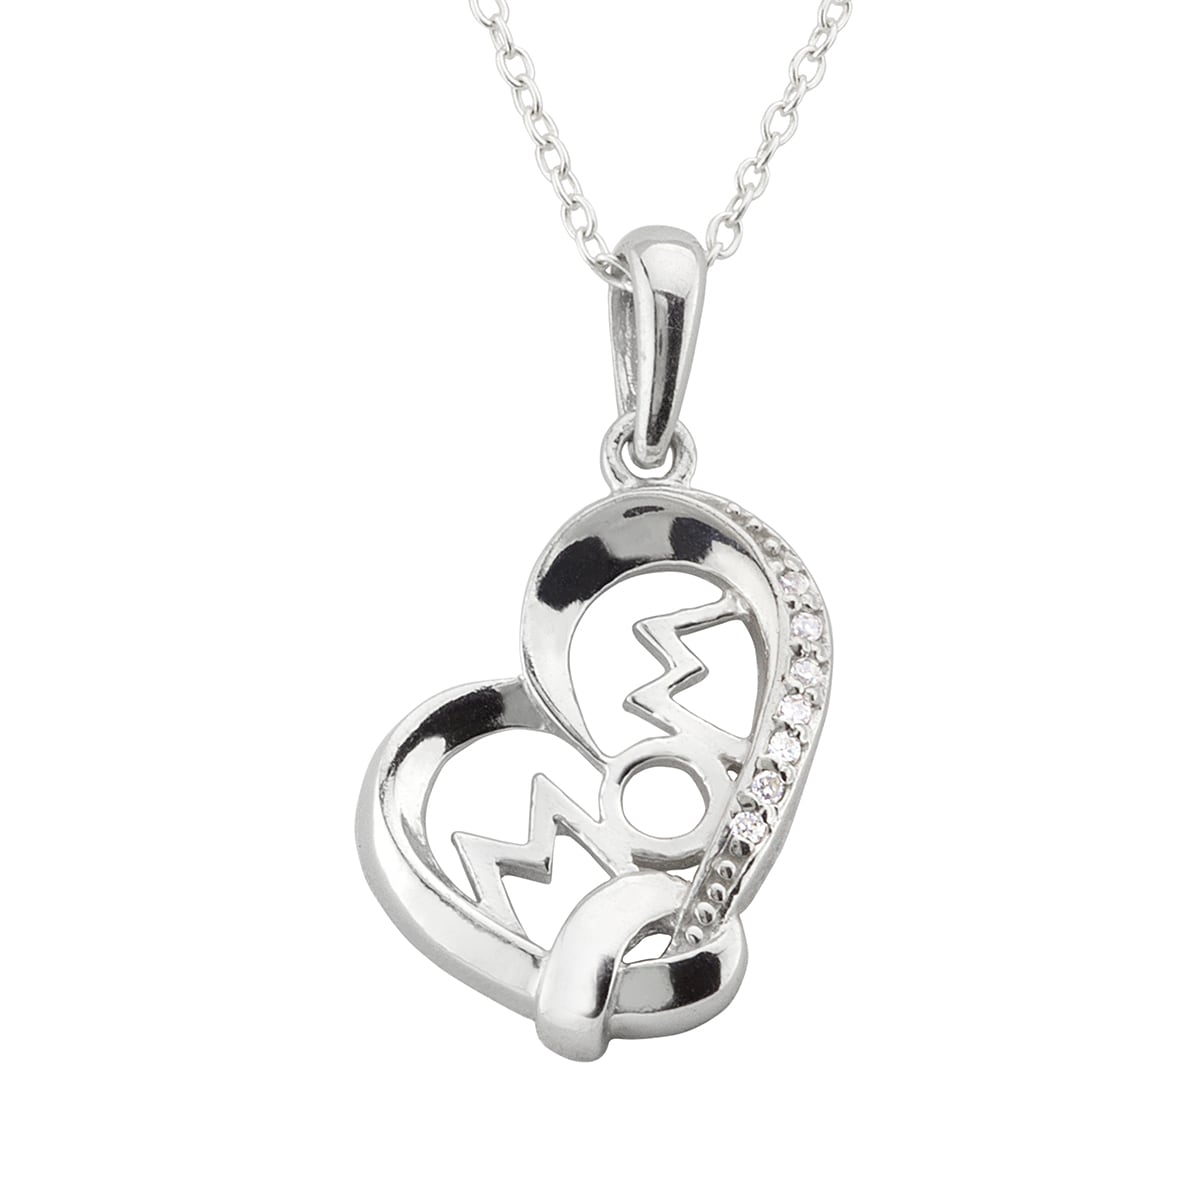 Shop haven park mom heart shaped pendant necklace free shipping shop haven park mom heart shaped pendant necklace free shipping on orders over 45 overstock 12052767 aloadofball Image collections